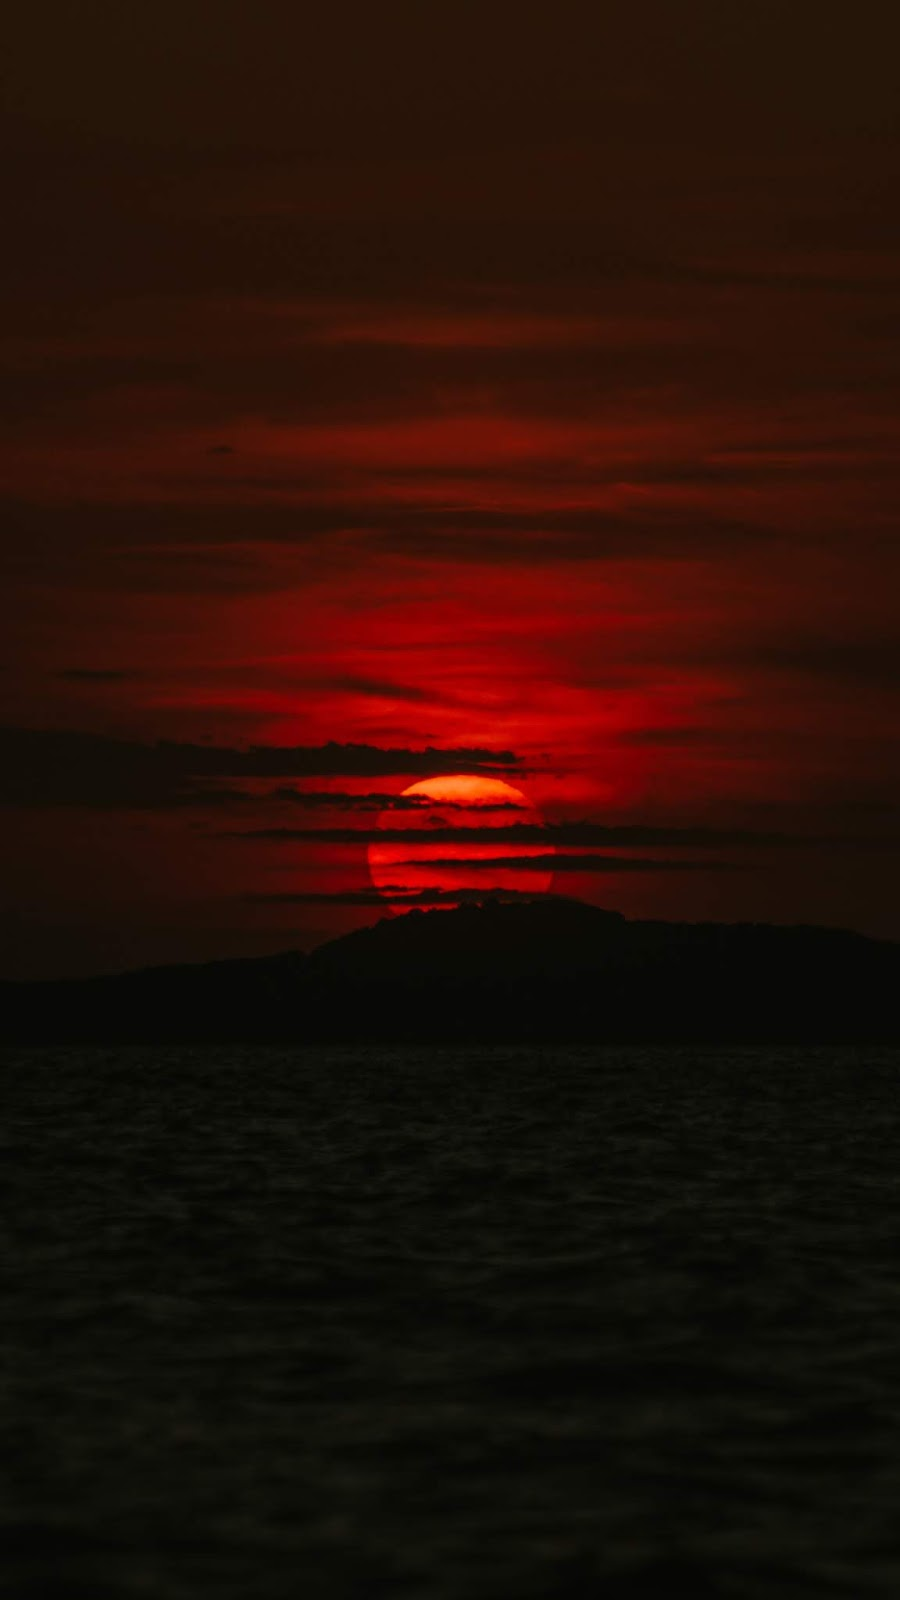 Red sunset in the dark night